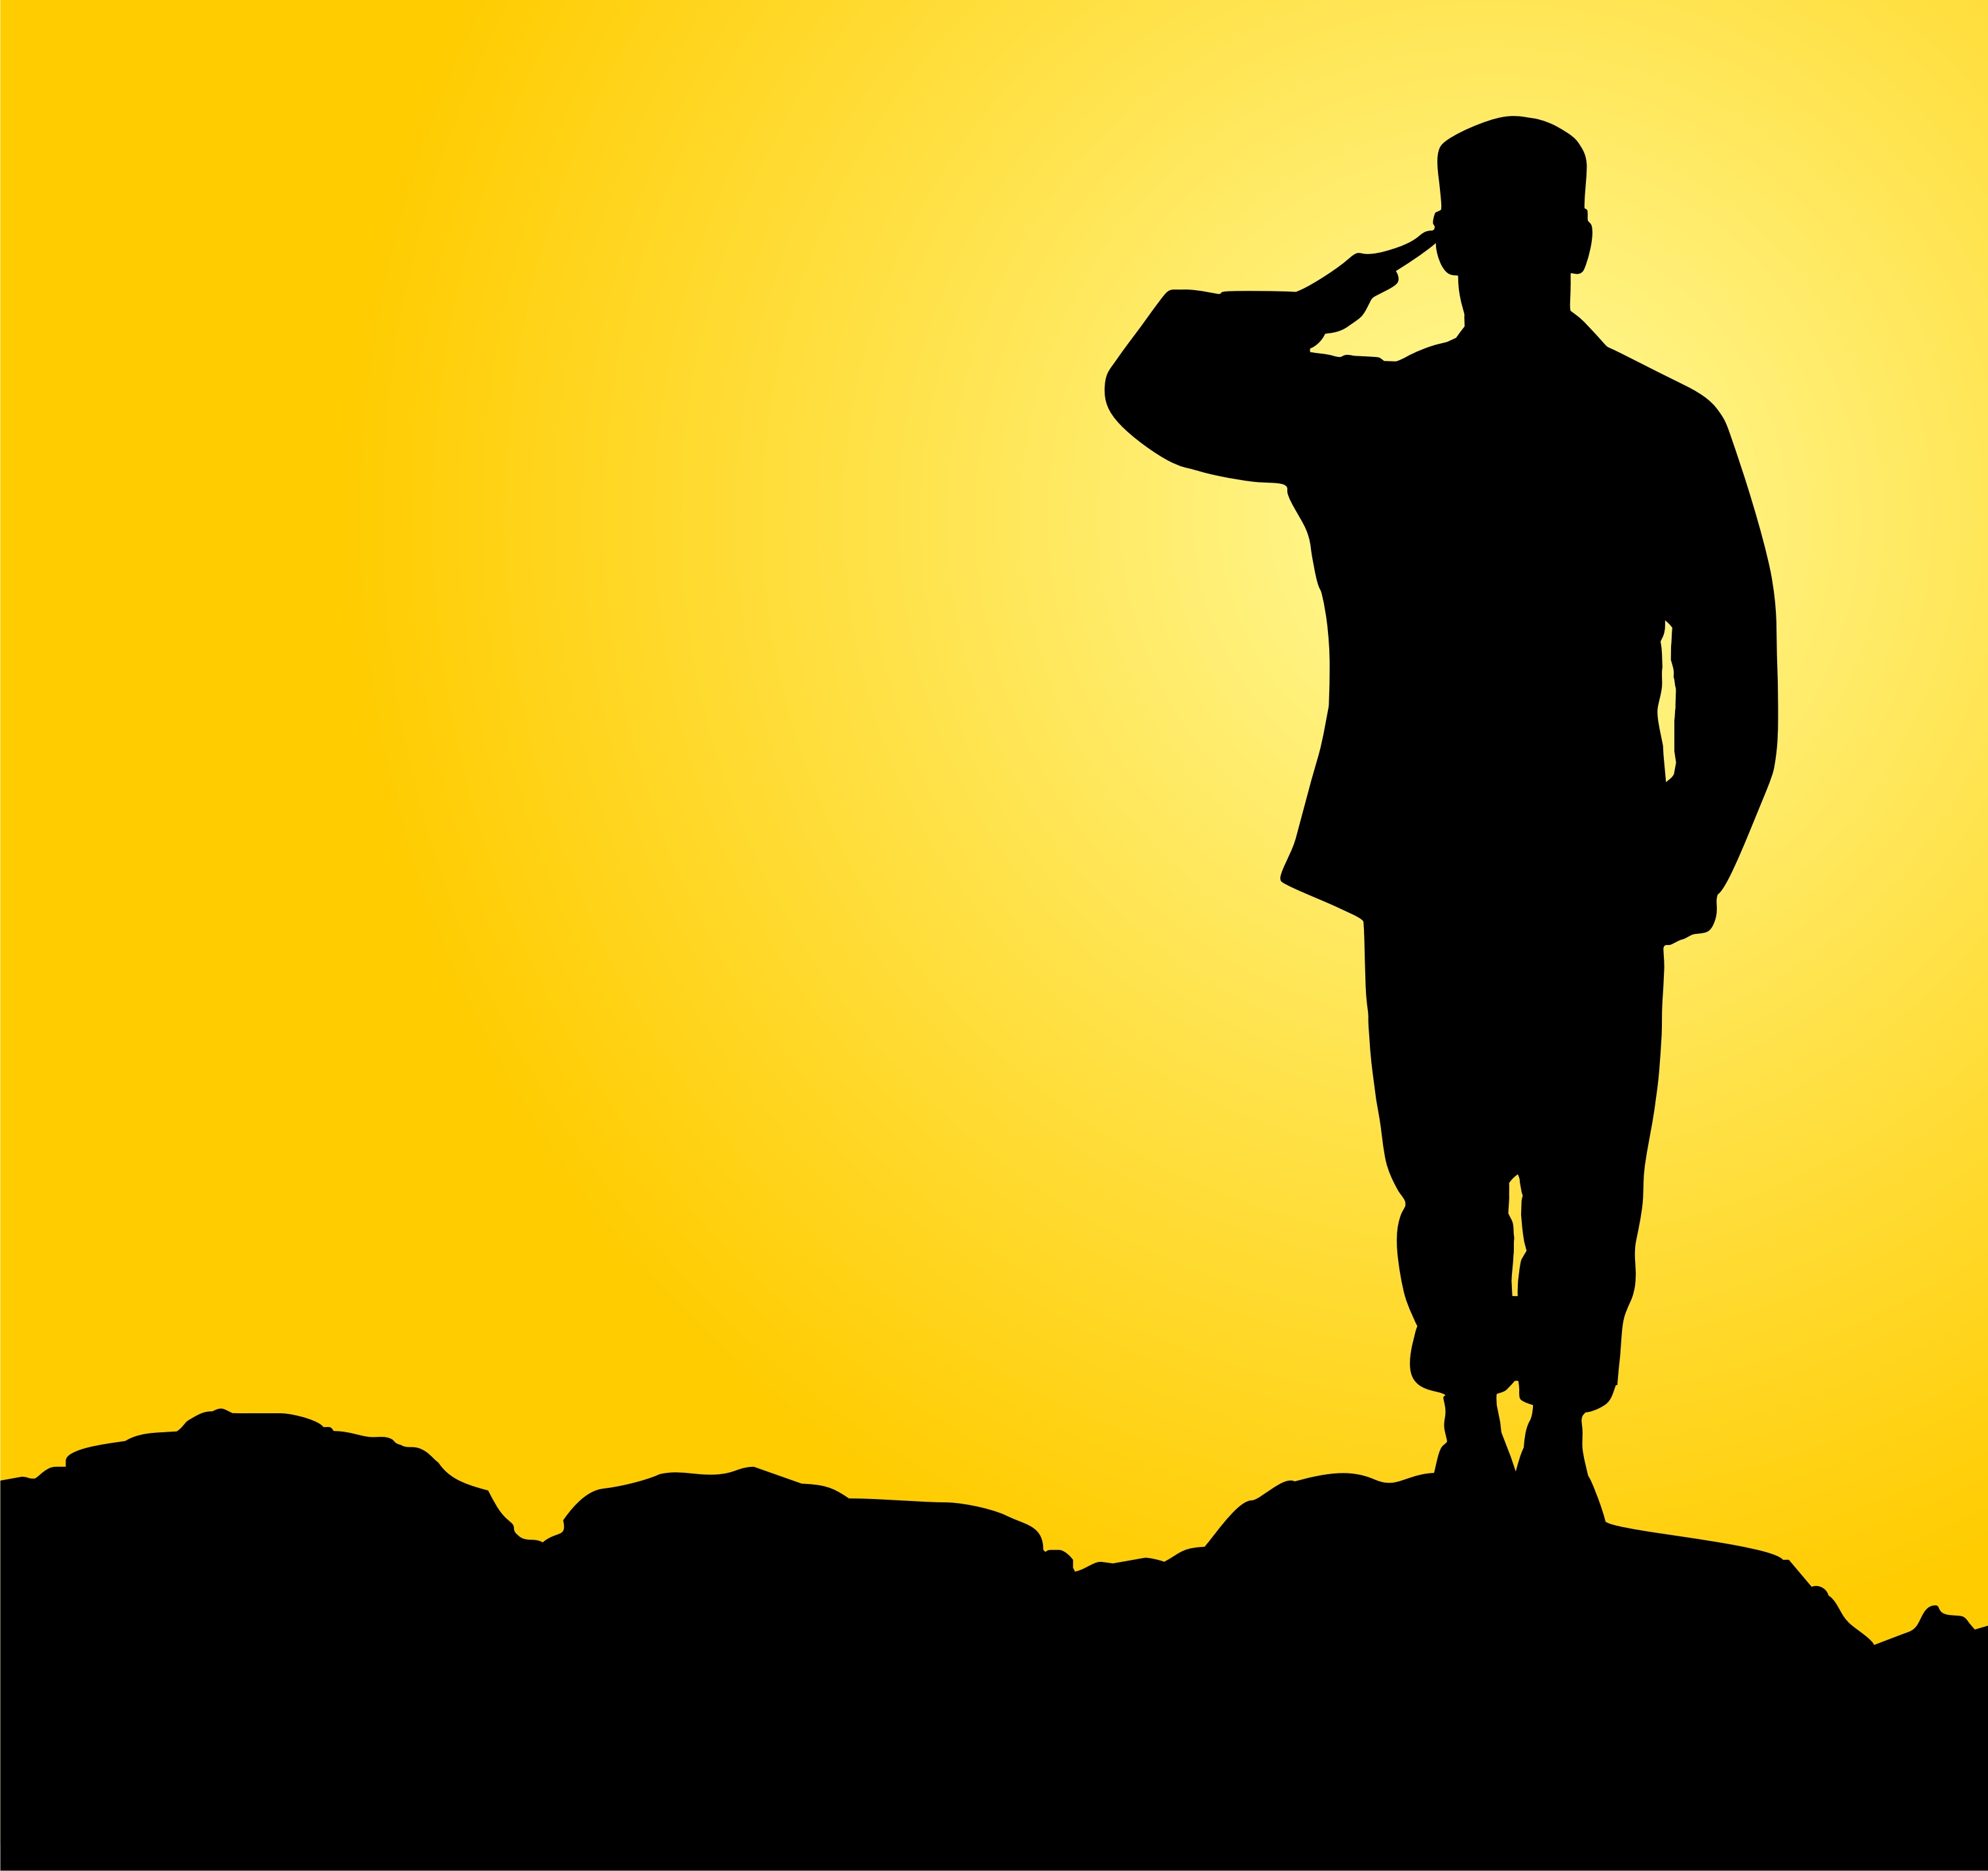 Soldier Salute Silhouette Vector